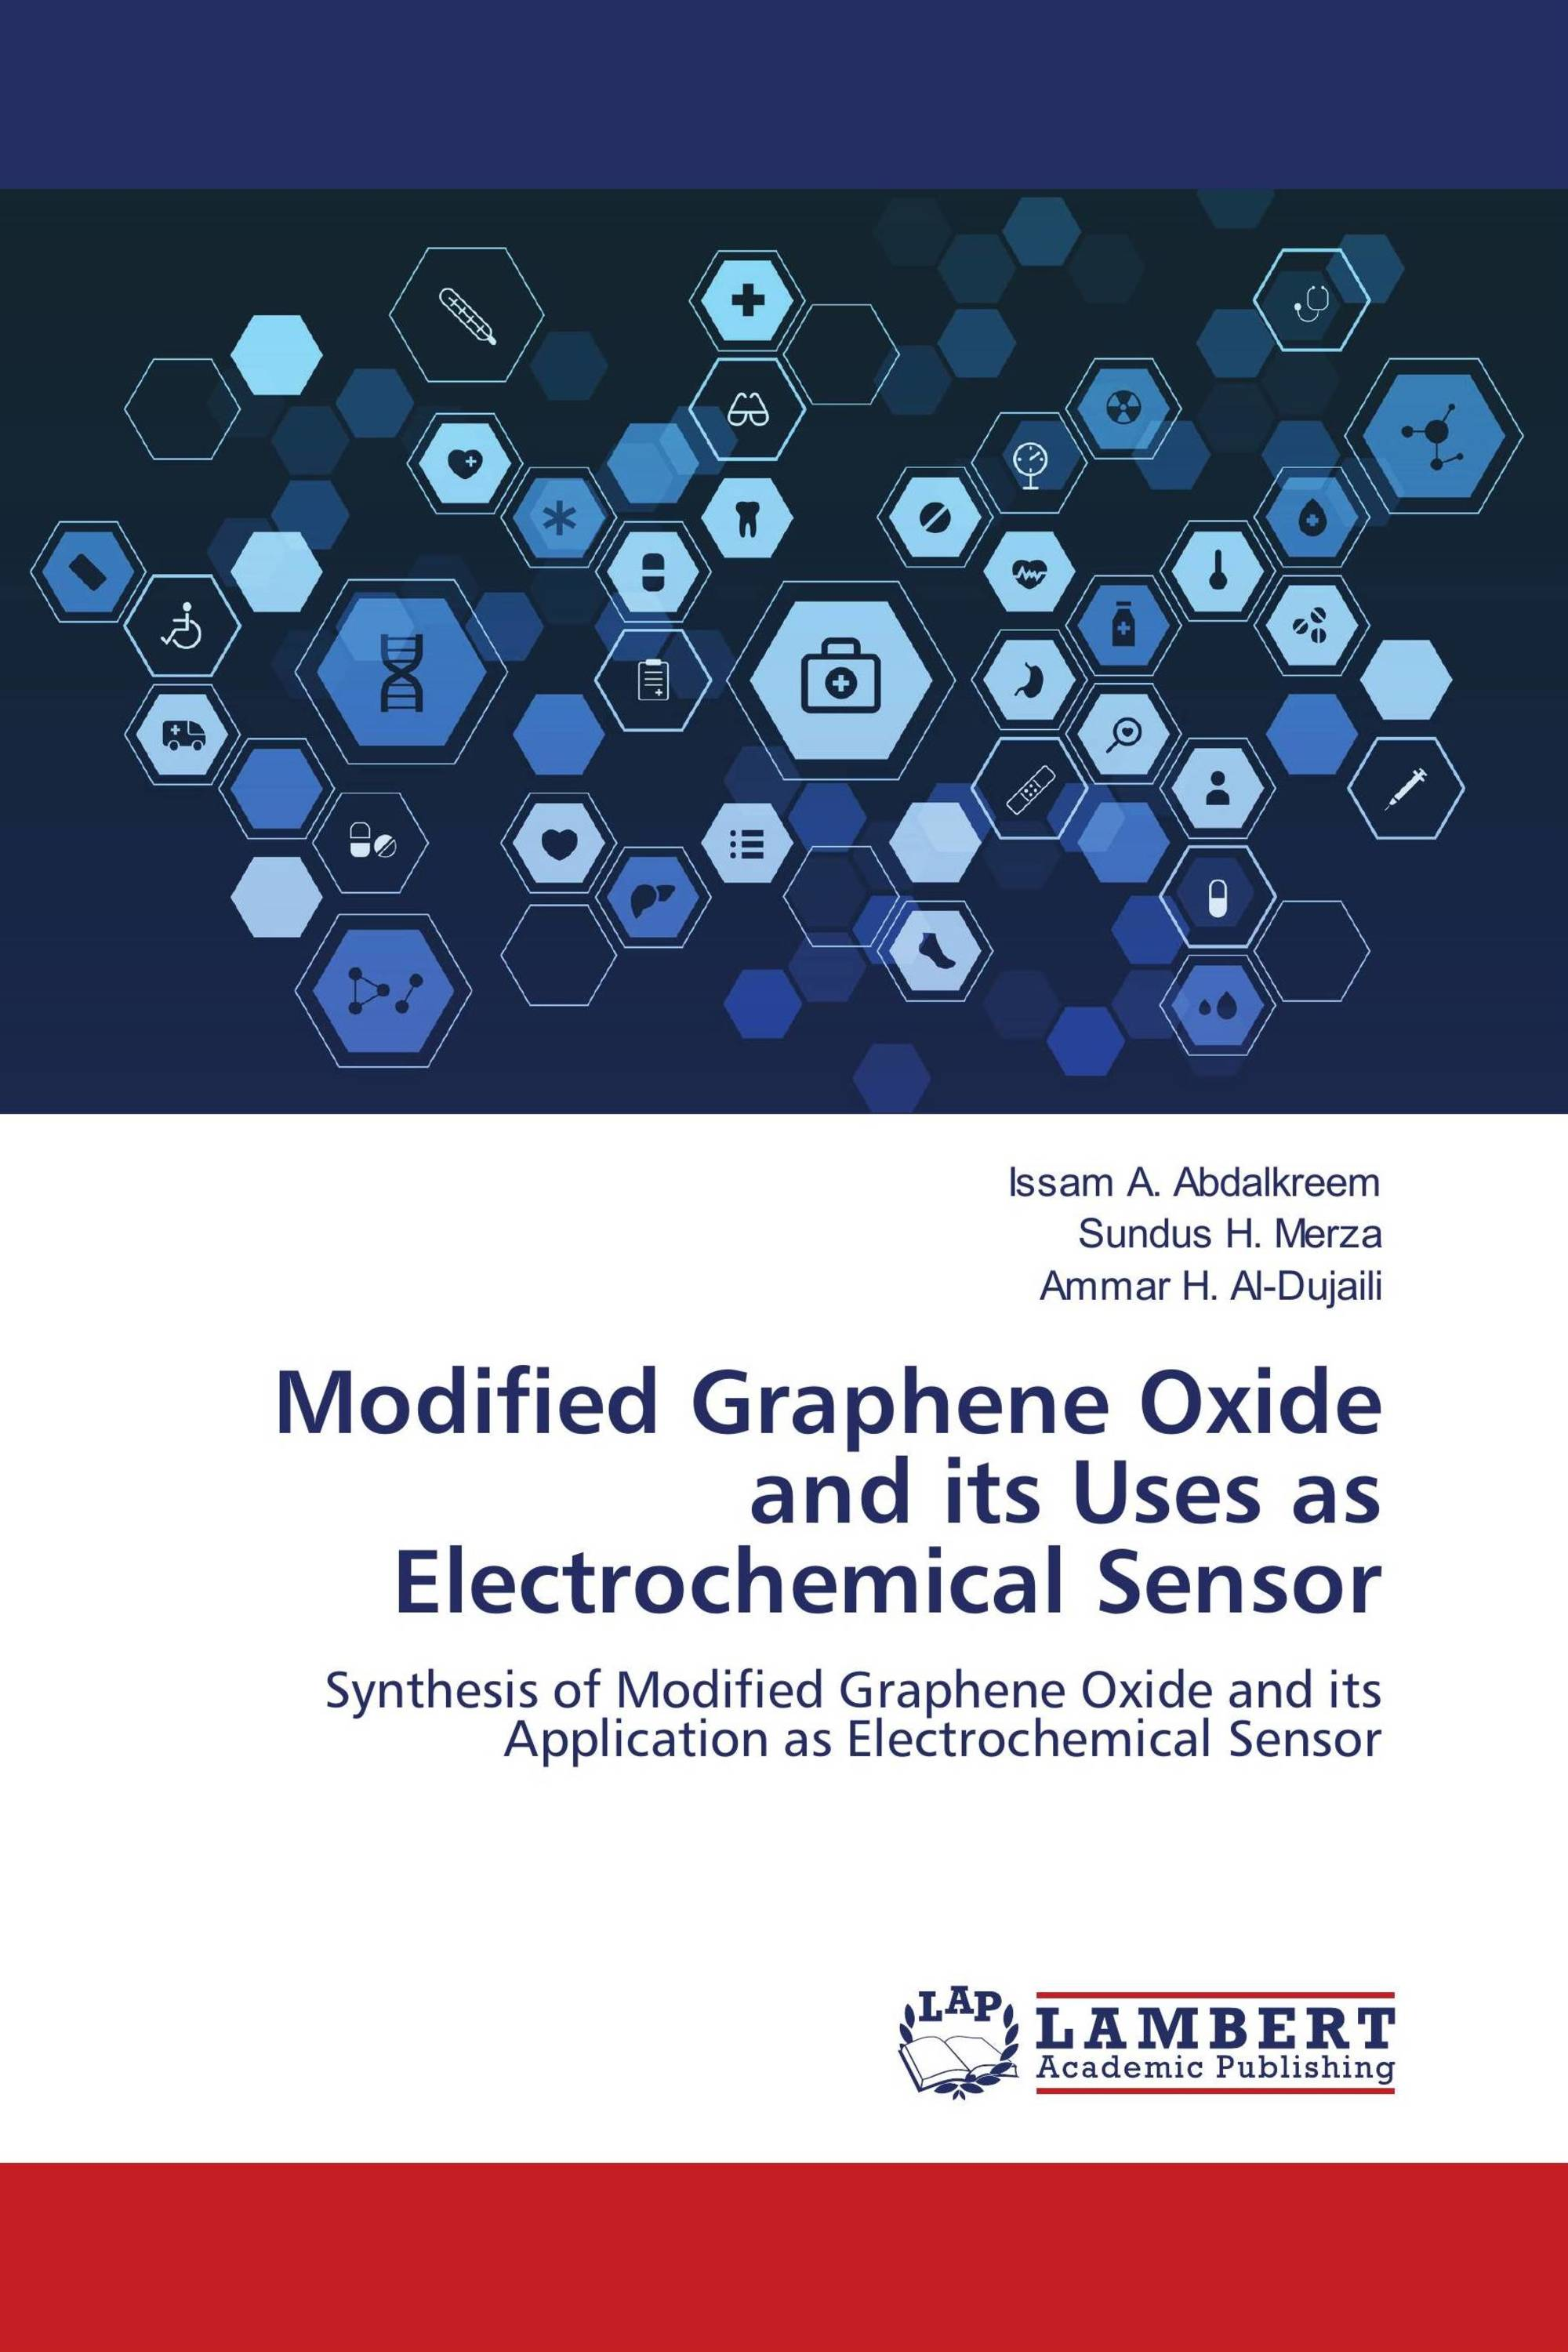 Modified Graphene Oxide and its Uses as Electrochemical